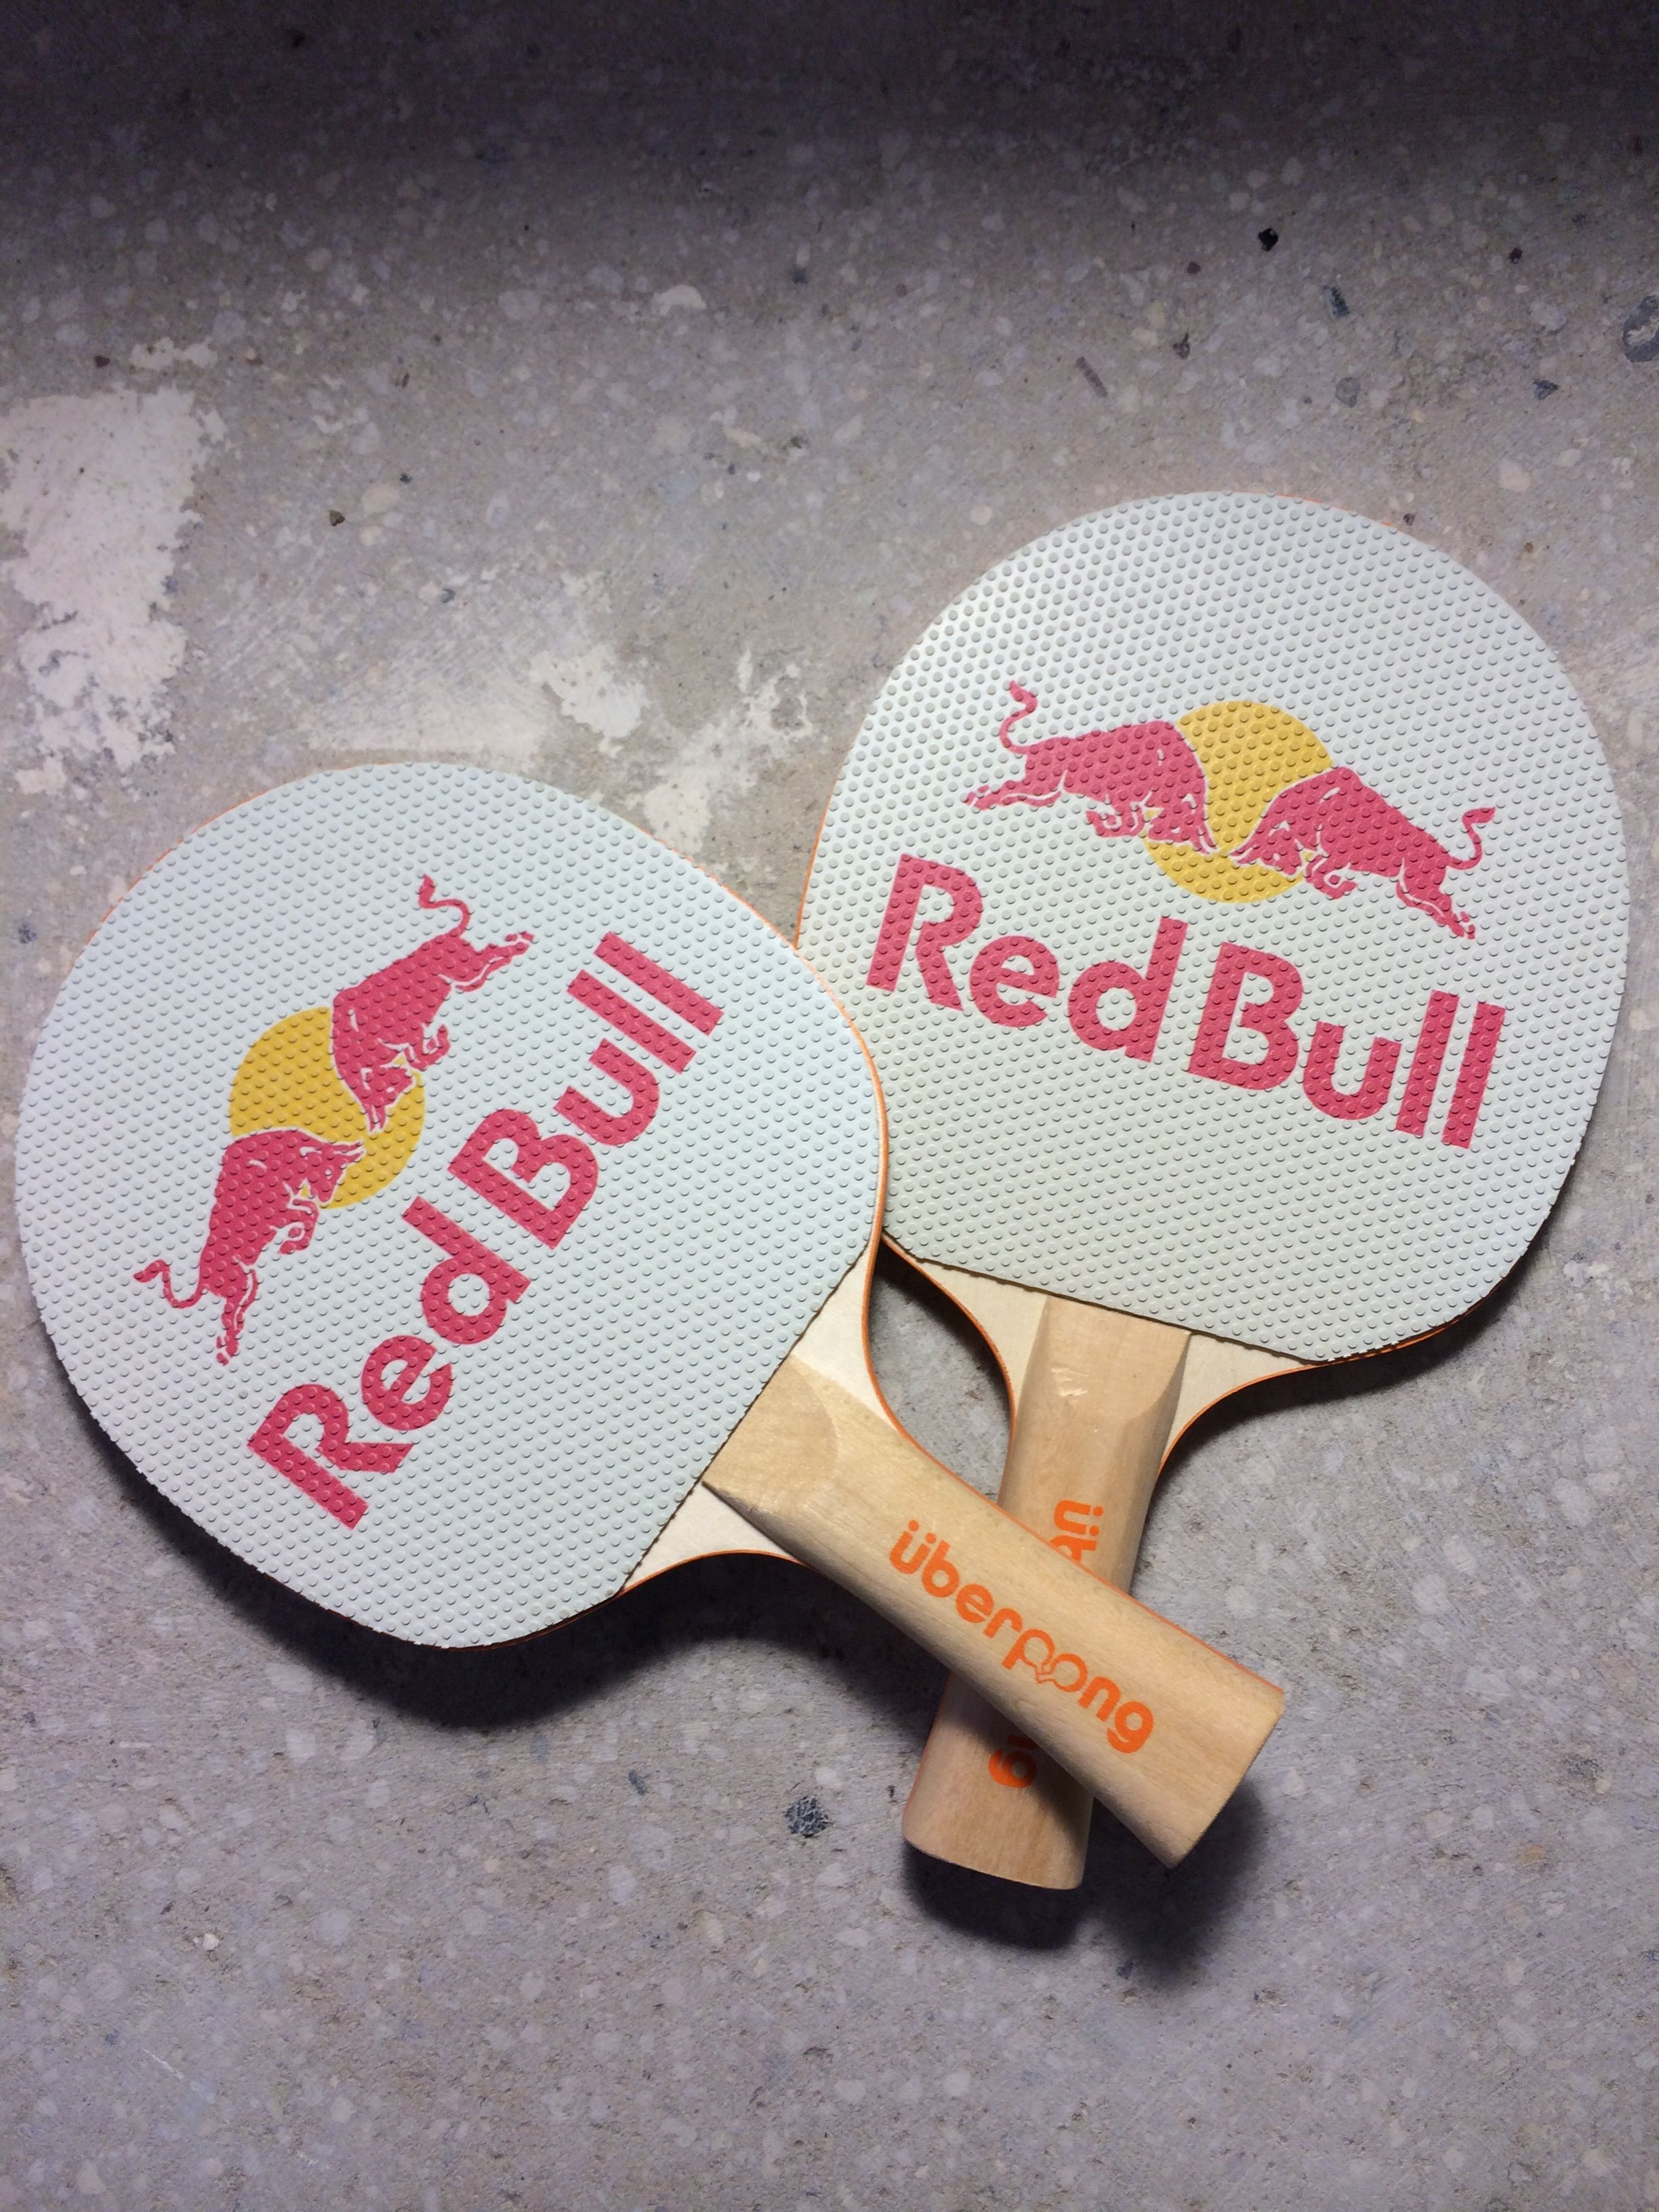 Red Bull Custom Ping Pong Paddles Uberpong Blog